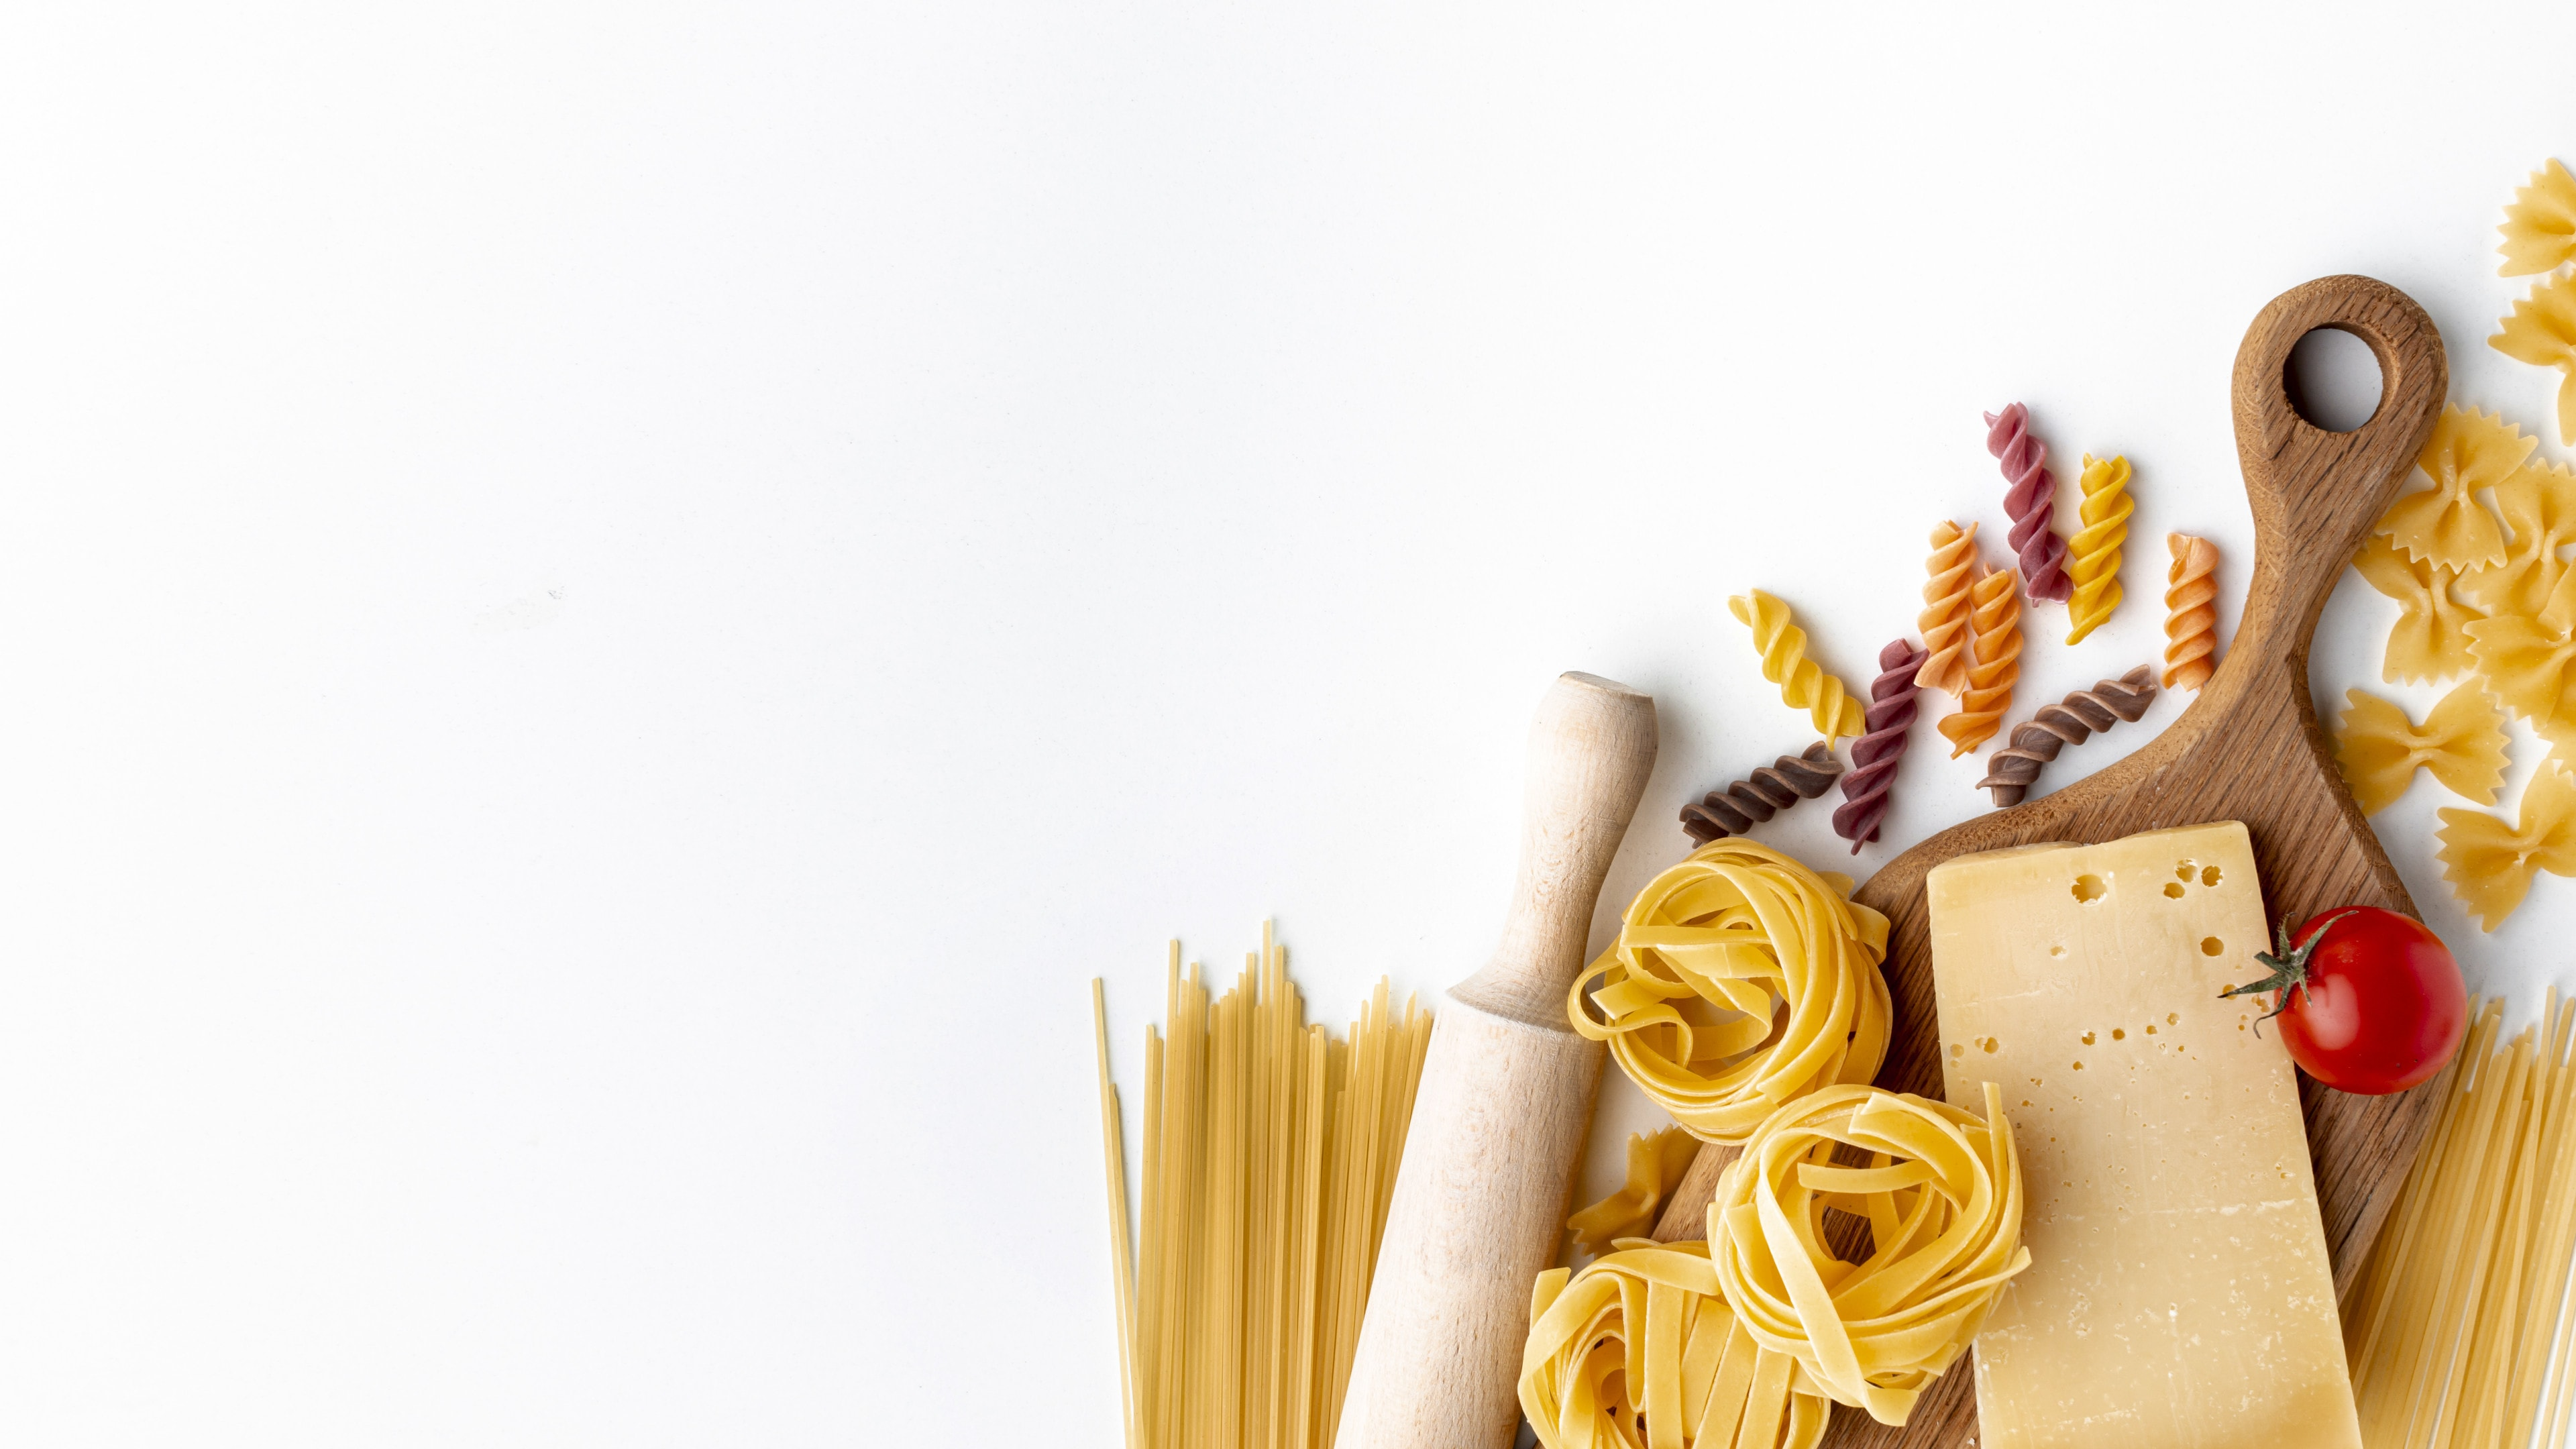 Mix of uncooked pasta and hard cheese on white background